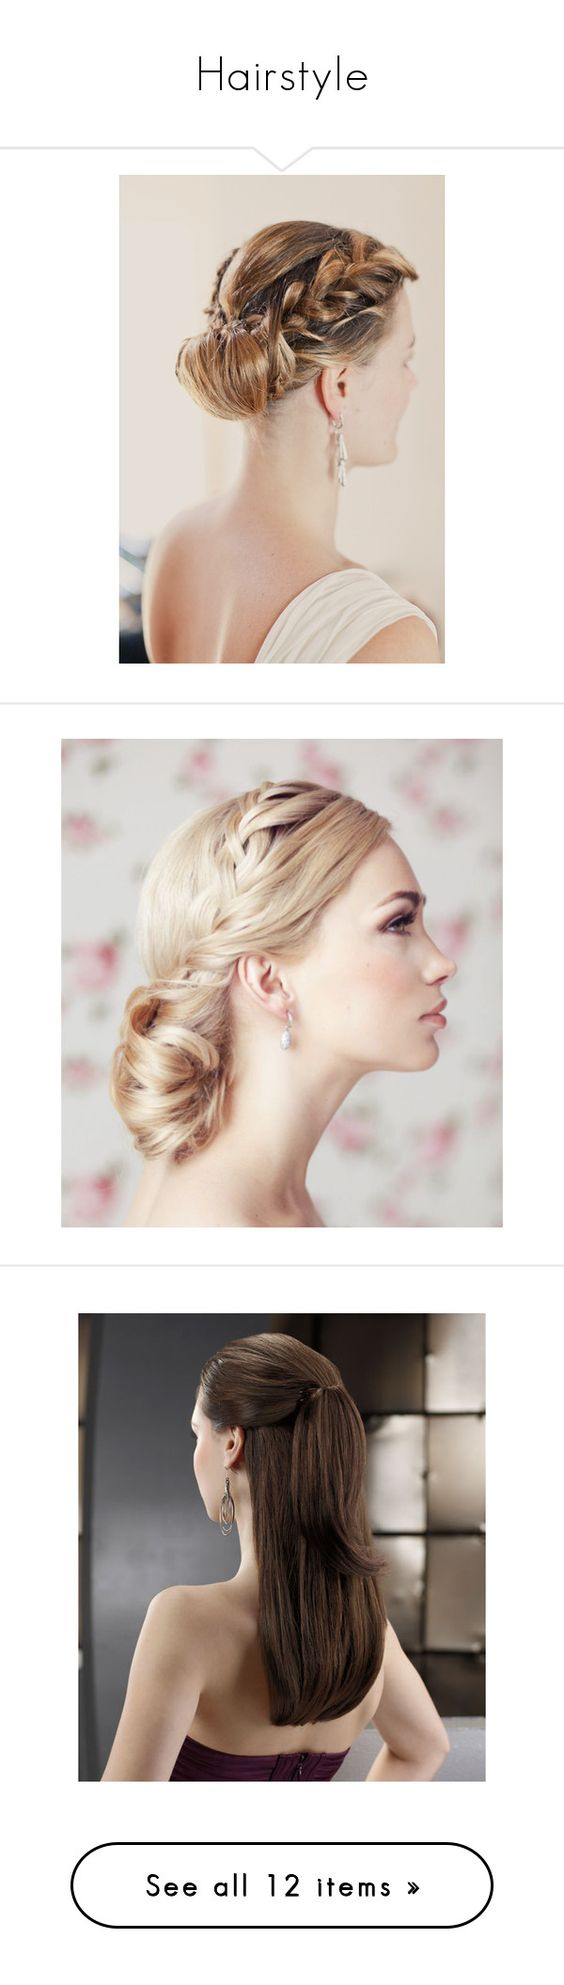 """Hairstyle"" by adelinewindsor ❤ liked on Polyvore featuring hair, accessories, hair accessories, cabelos, hairstyle, beauty products, haircare, hair styling tools, hairstyles and hair styles"